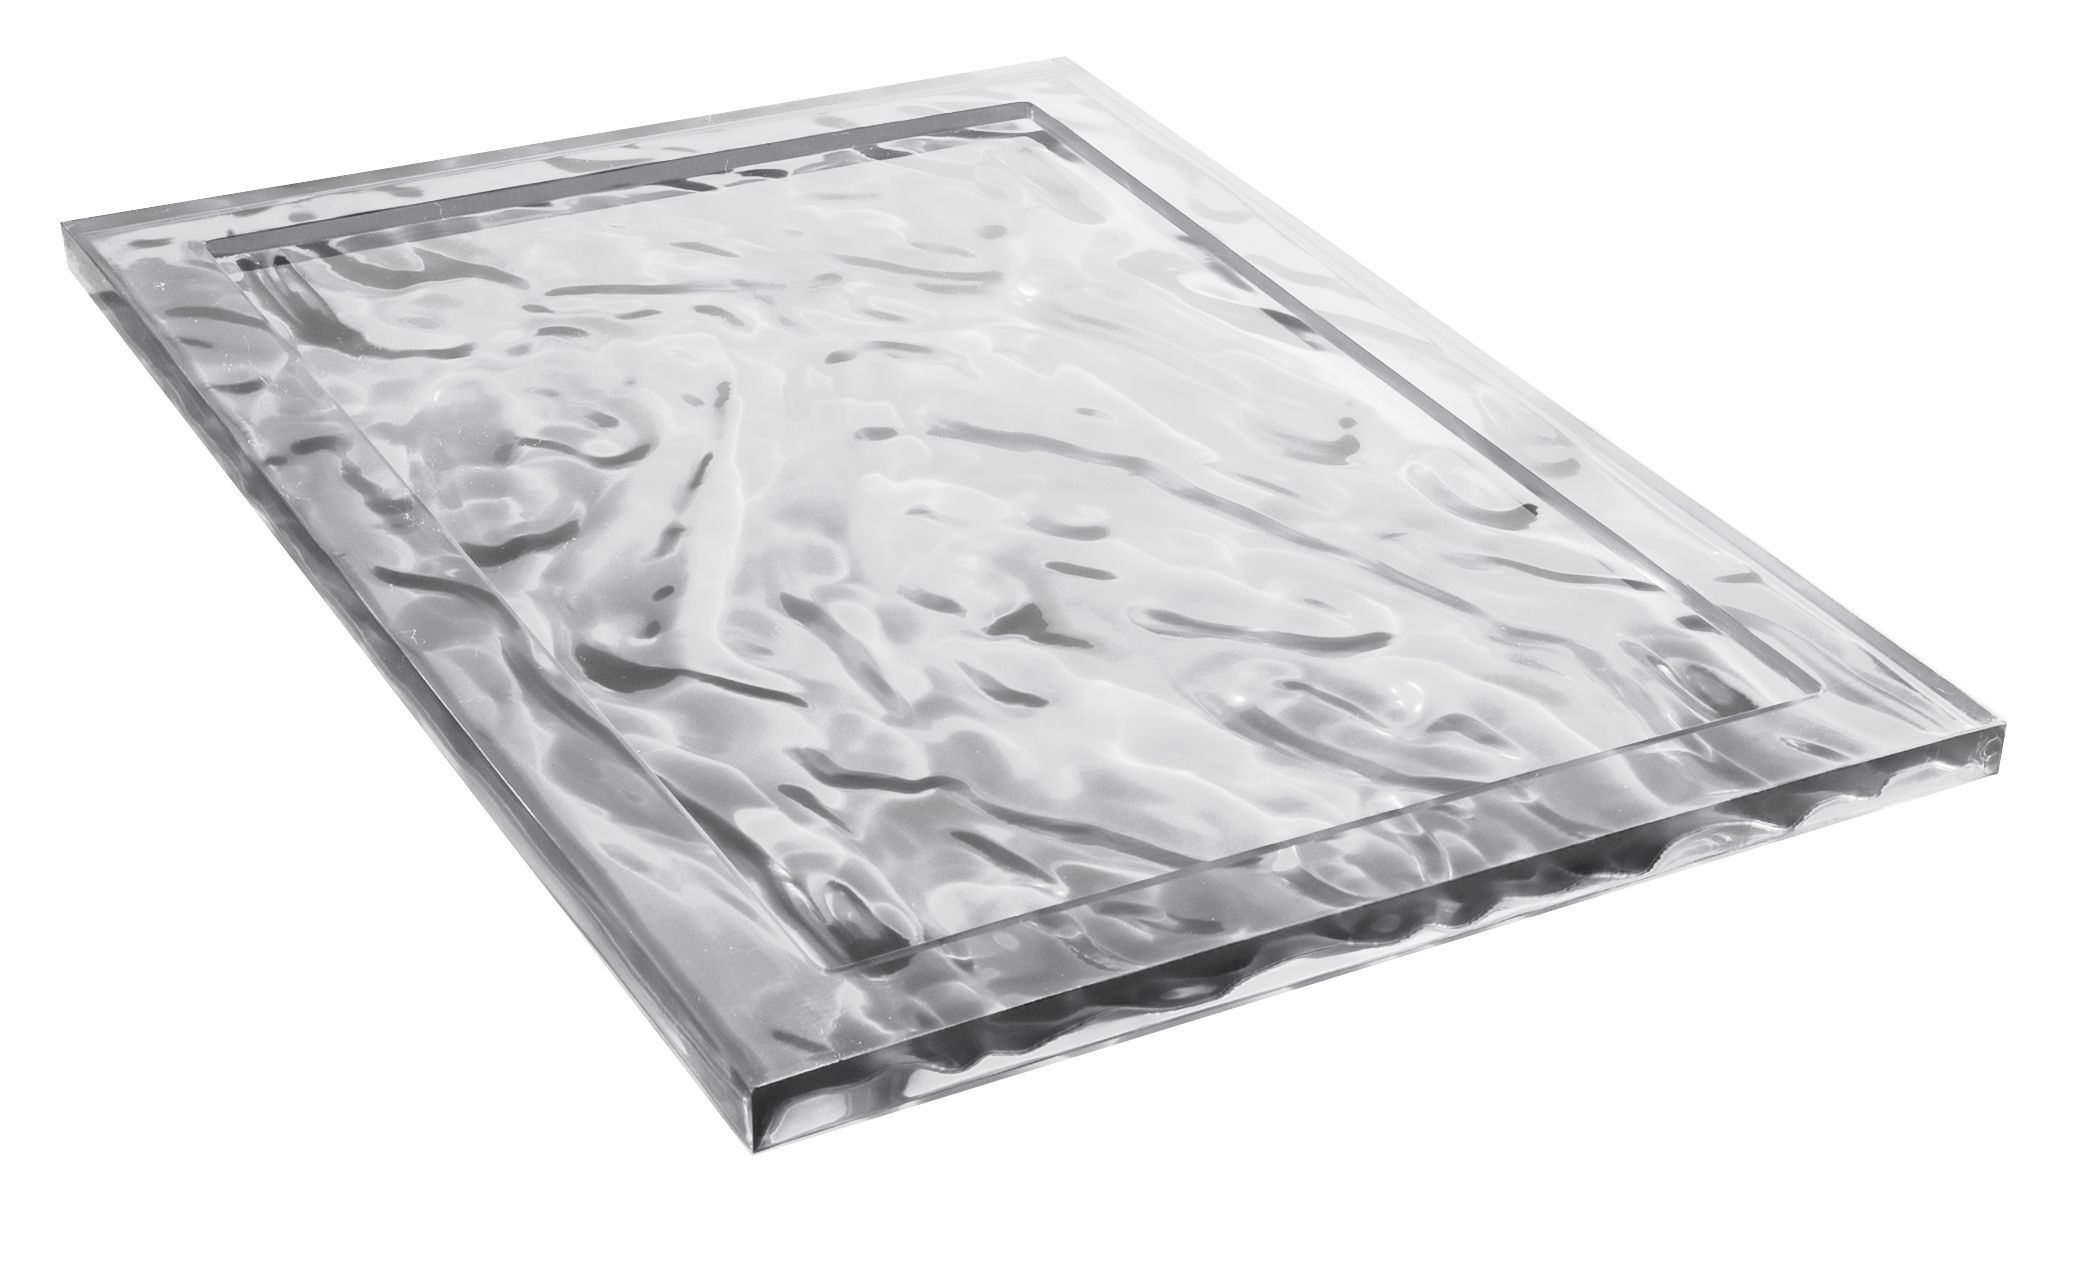 Tableware - Trays - Dune Large Tray - 55 x 38 cm by Kartell - Clear - Technopolymer